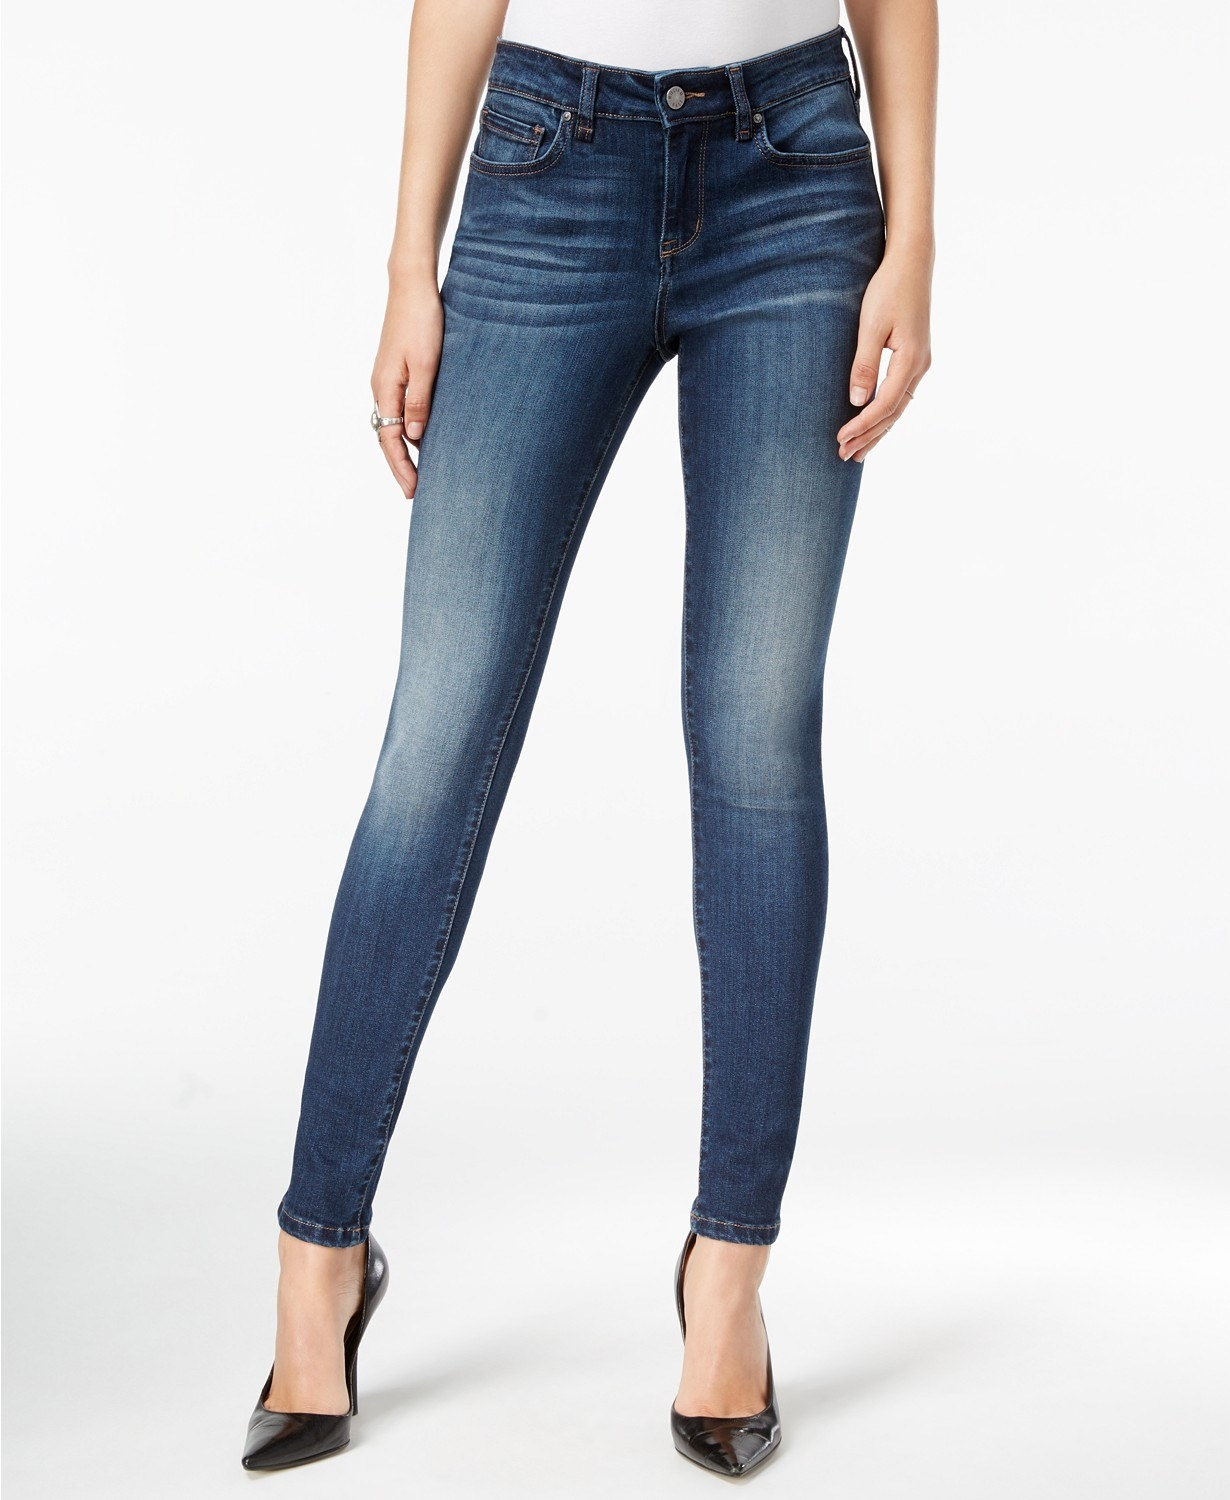 Model wearing the skinny jeans in blue with lighter coloring around the knees and whiskering near the waist